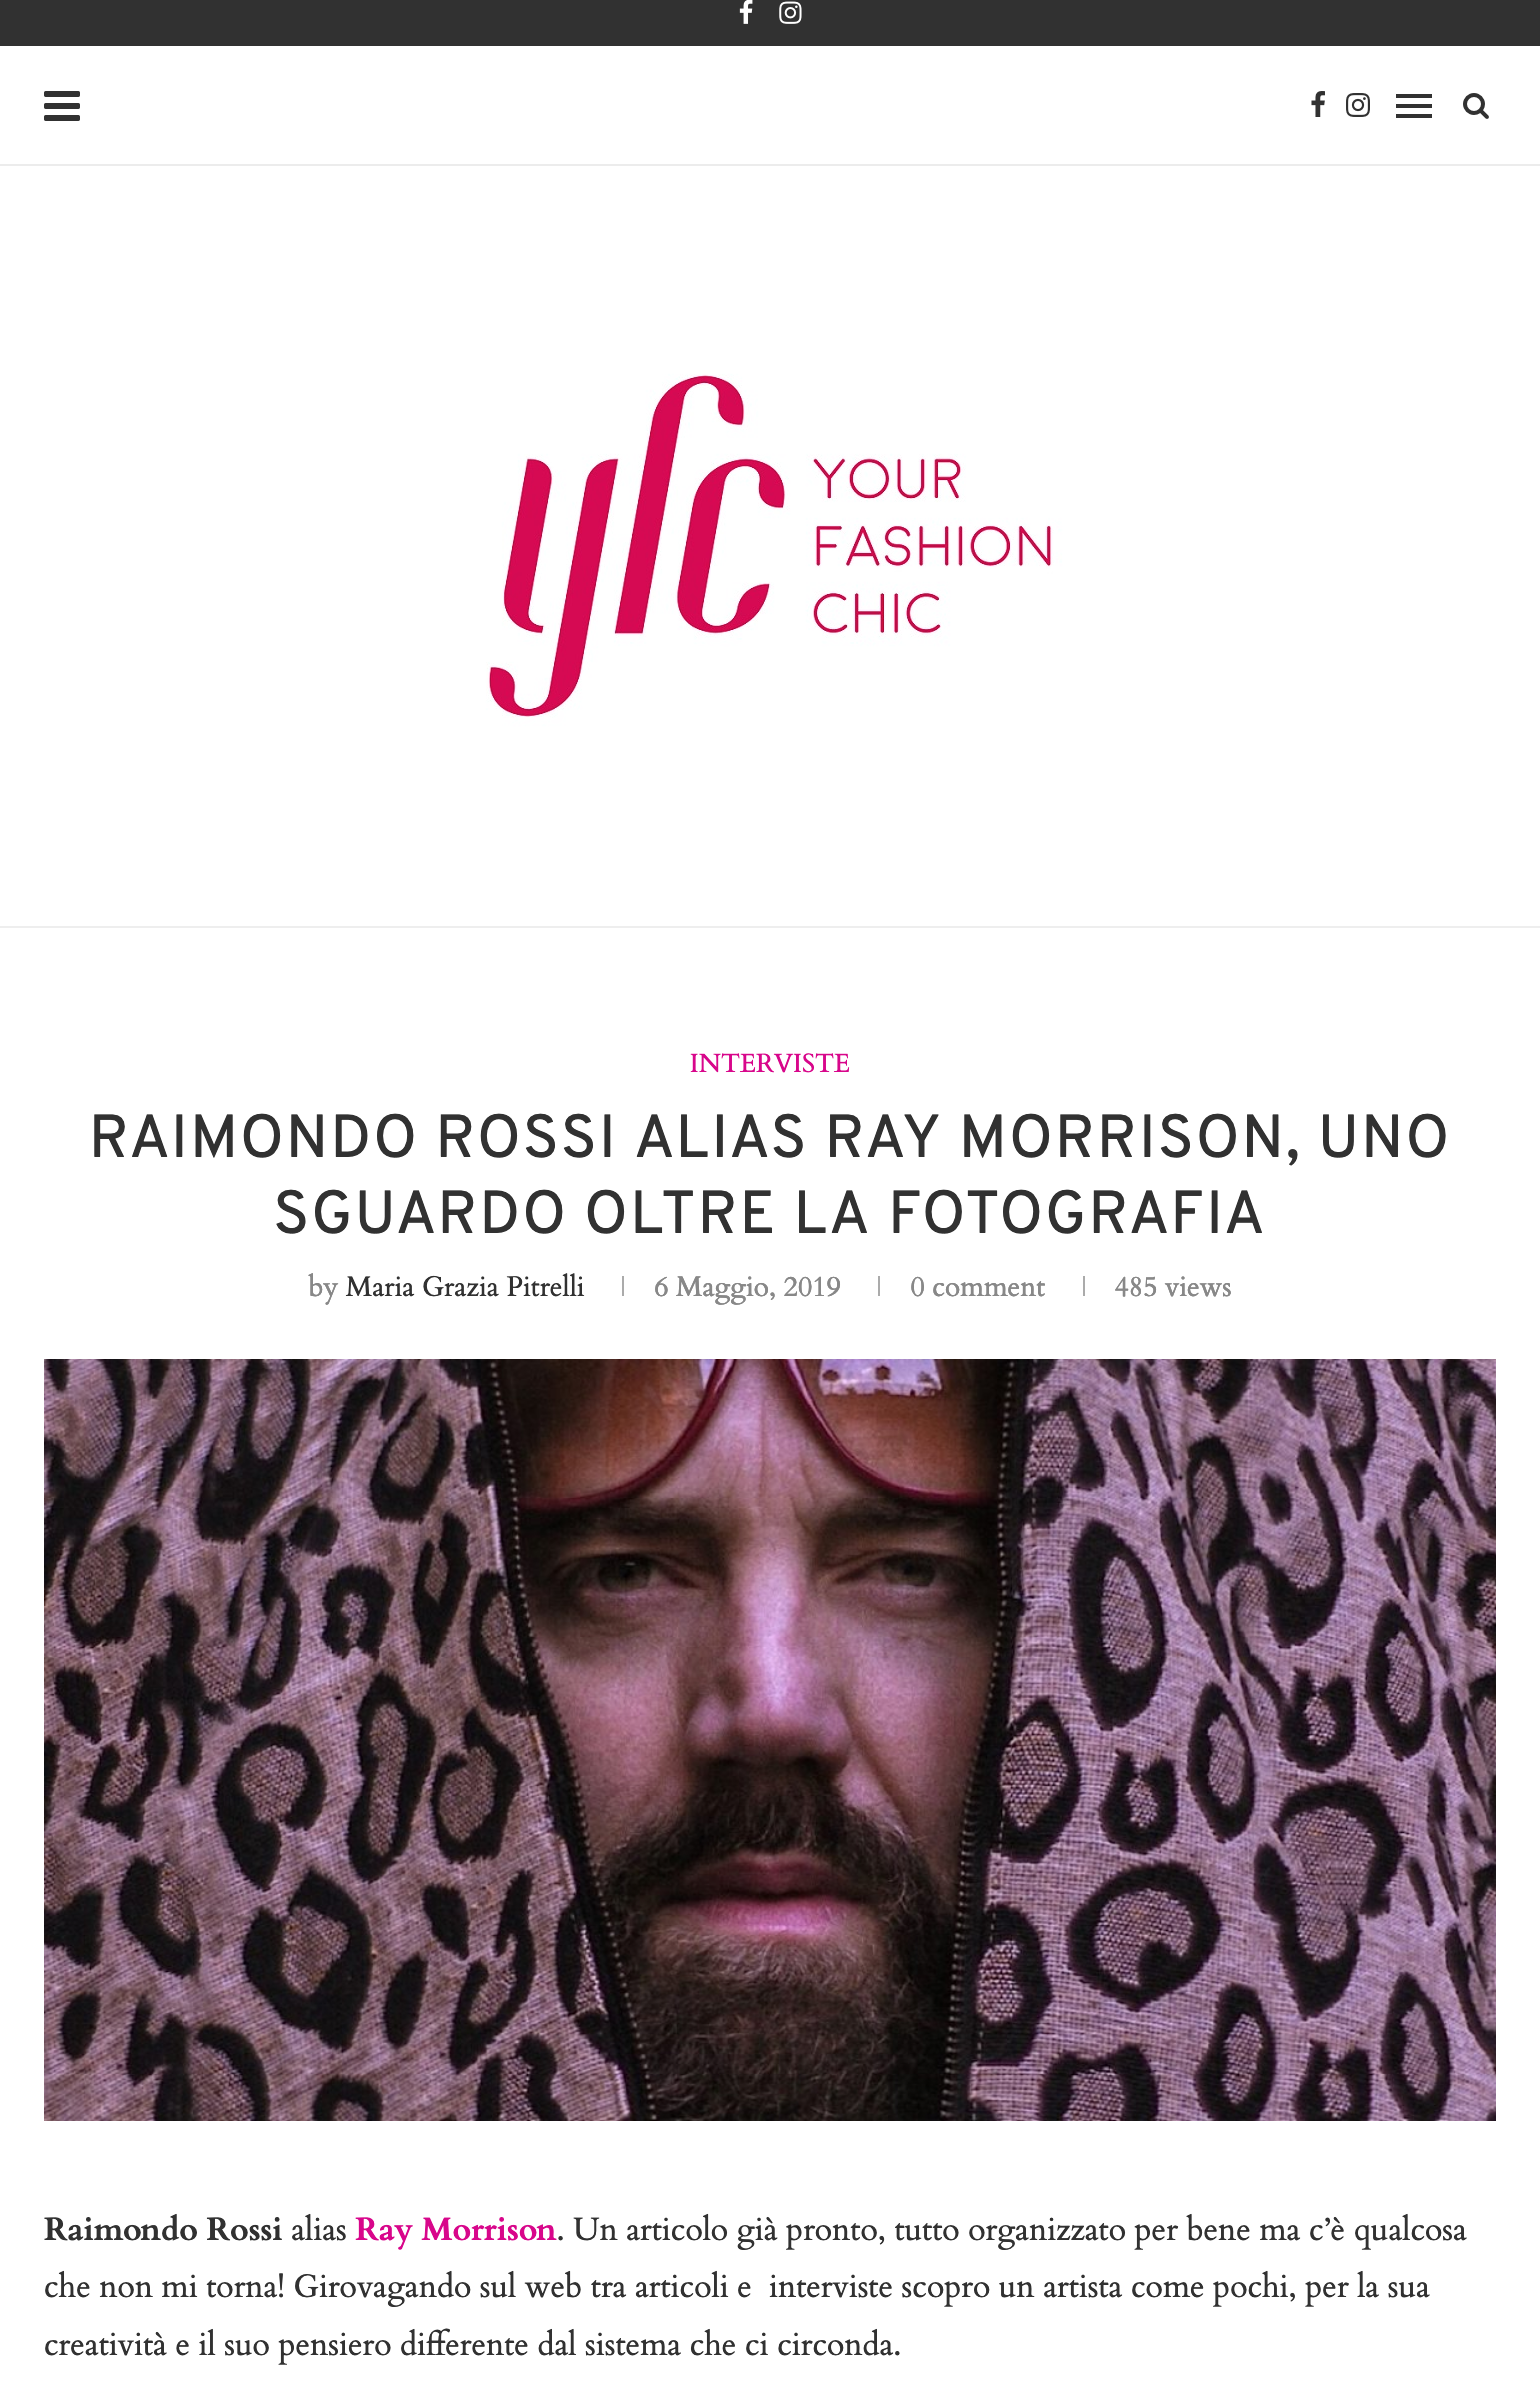 Your Fashion Chic - Ray Morrison (Raimondo Rossi)